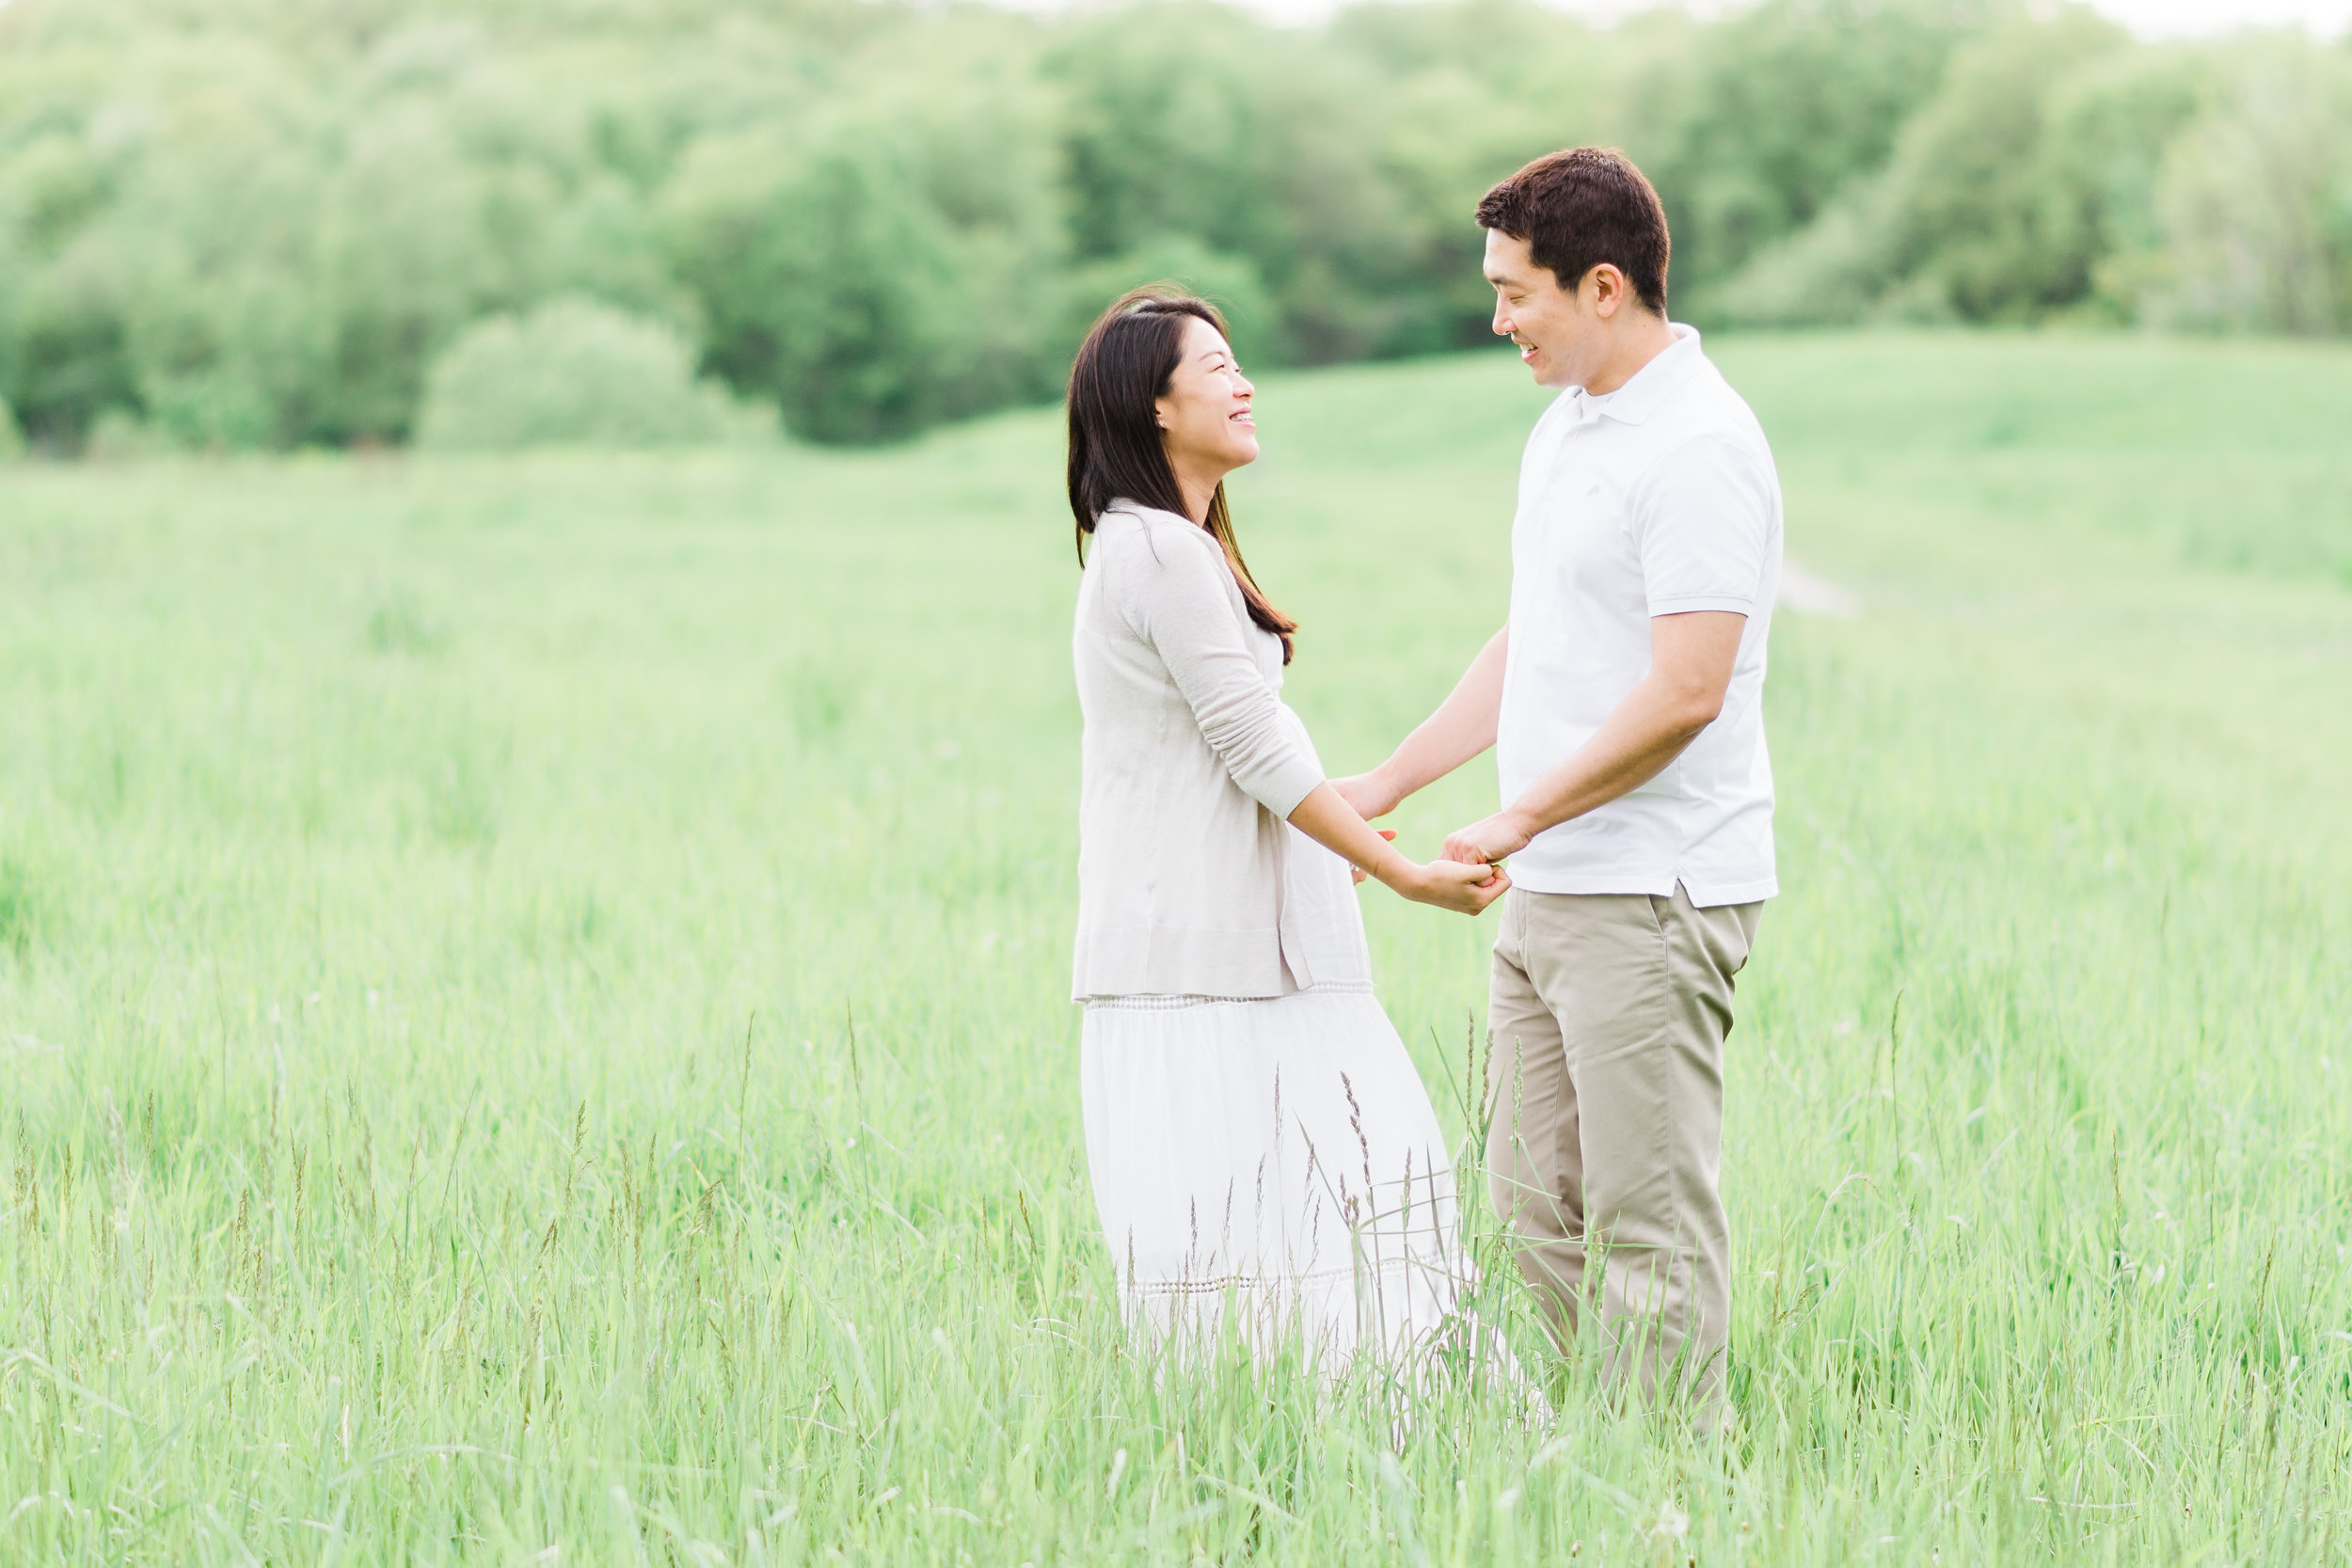 Maternity Photography Session at Hickory Hill Park | Iowa City Photographer